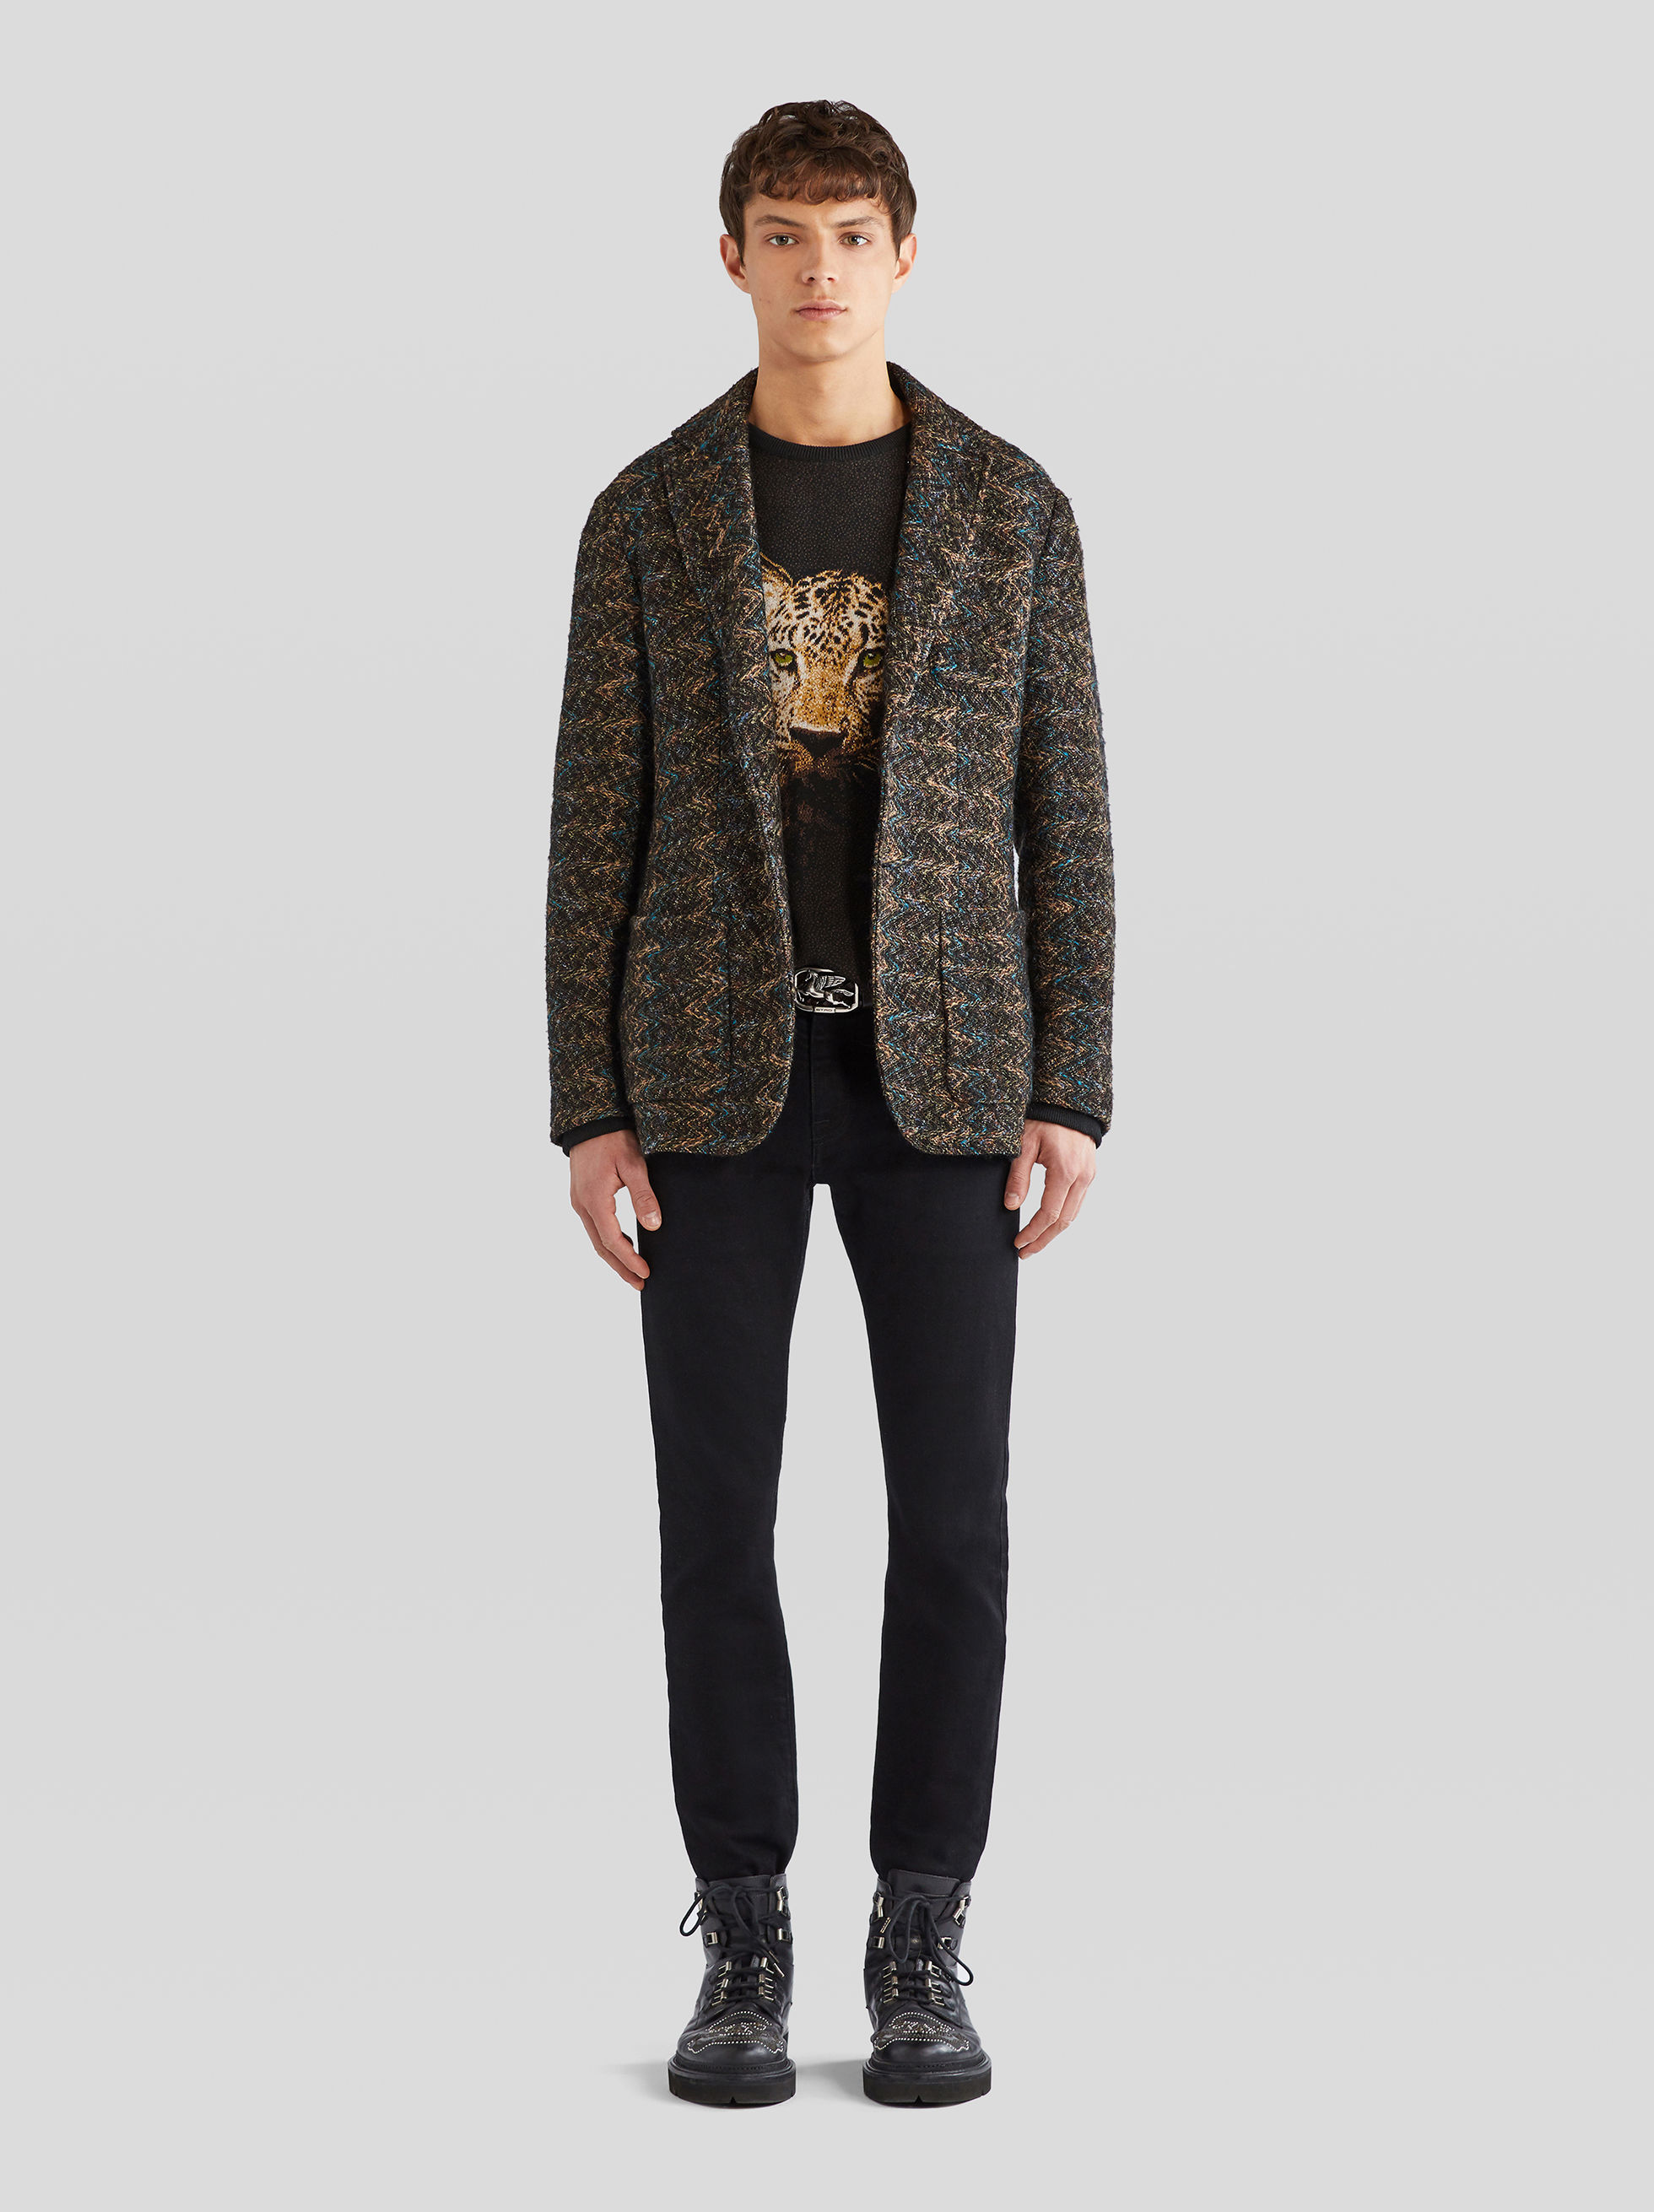 TWILL PATTERN JACQUARD KNIT JACKET